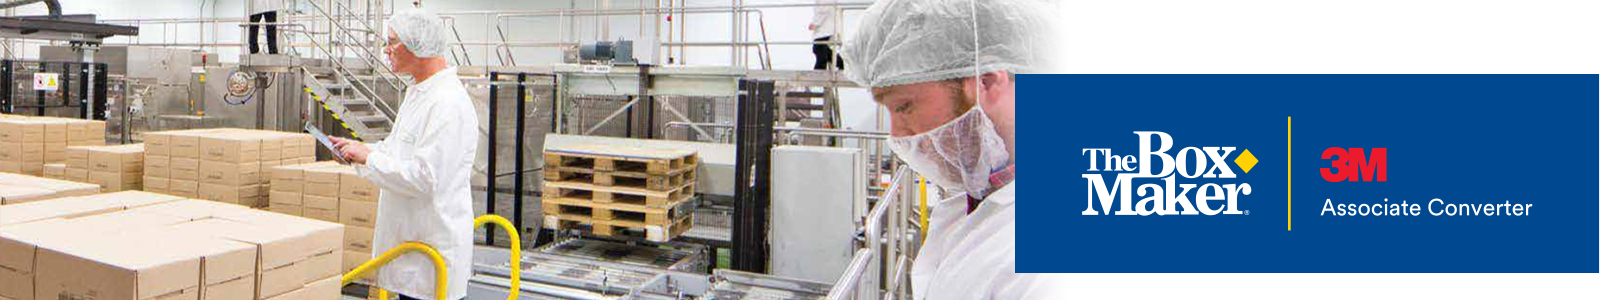 3M Food Processing Facility Guide The BoxMaker